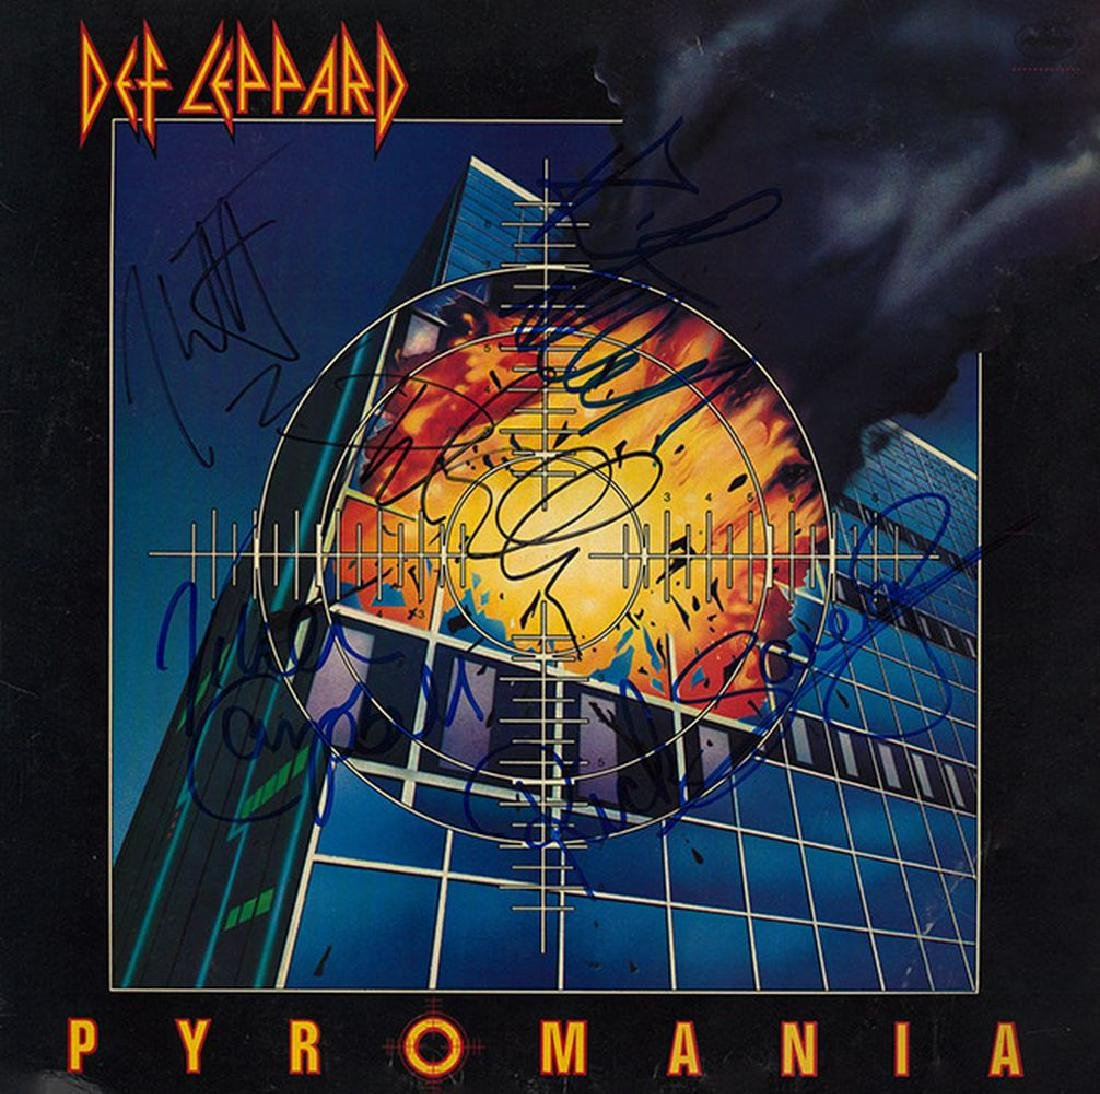 Def Leppard Band Signed Pyromania Album